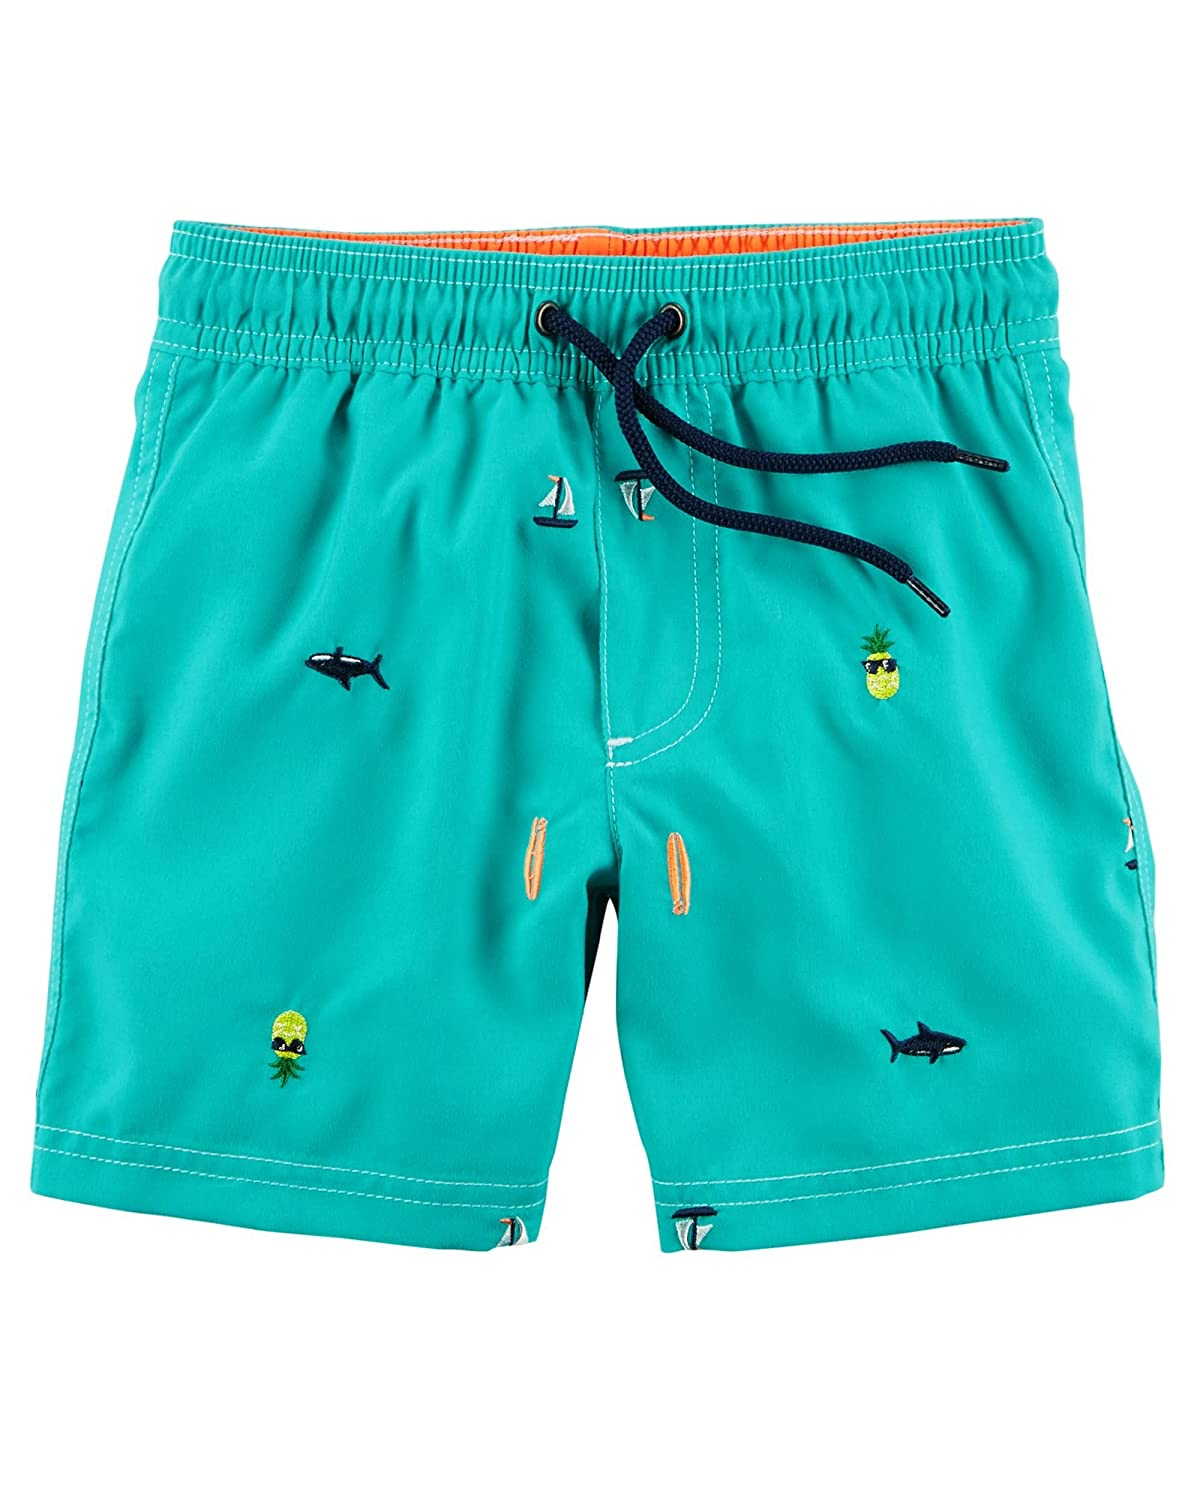 169d18fa05 Carters Boys 4-8 Neon Shark Swim Trunks - blog.juhll.com